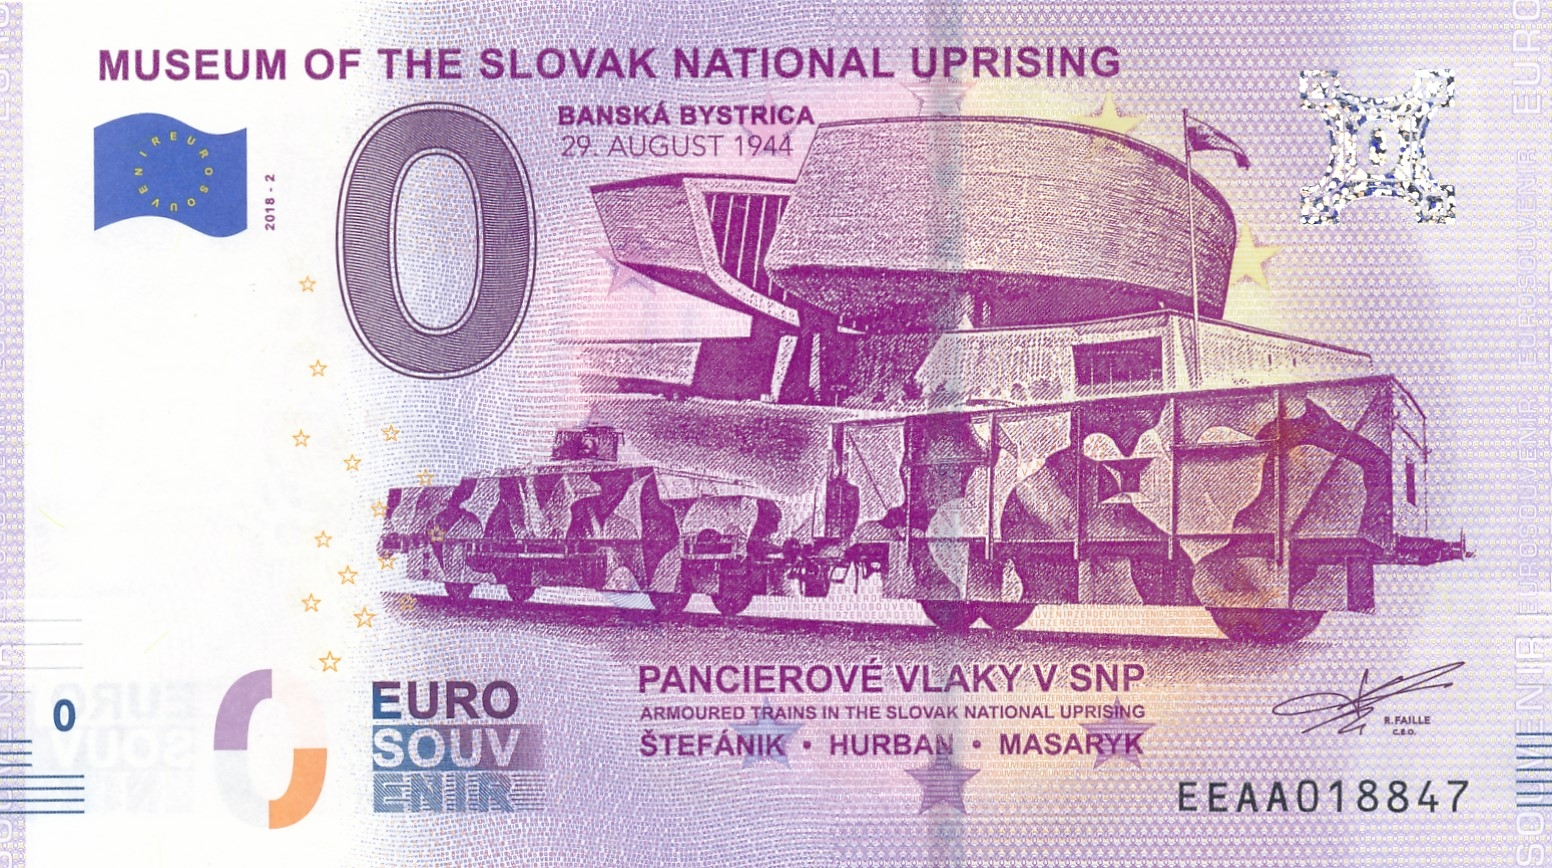 0 Euro Souvenir Museum of the Slovak National Uprising